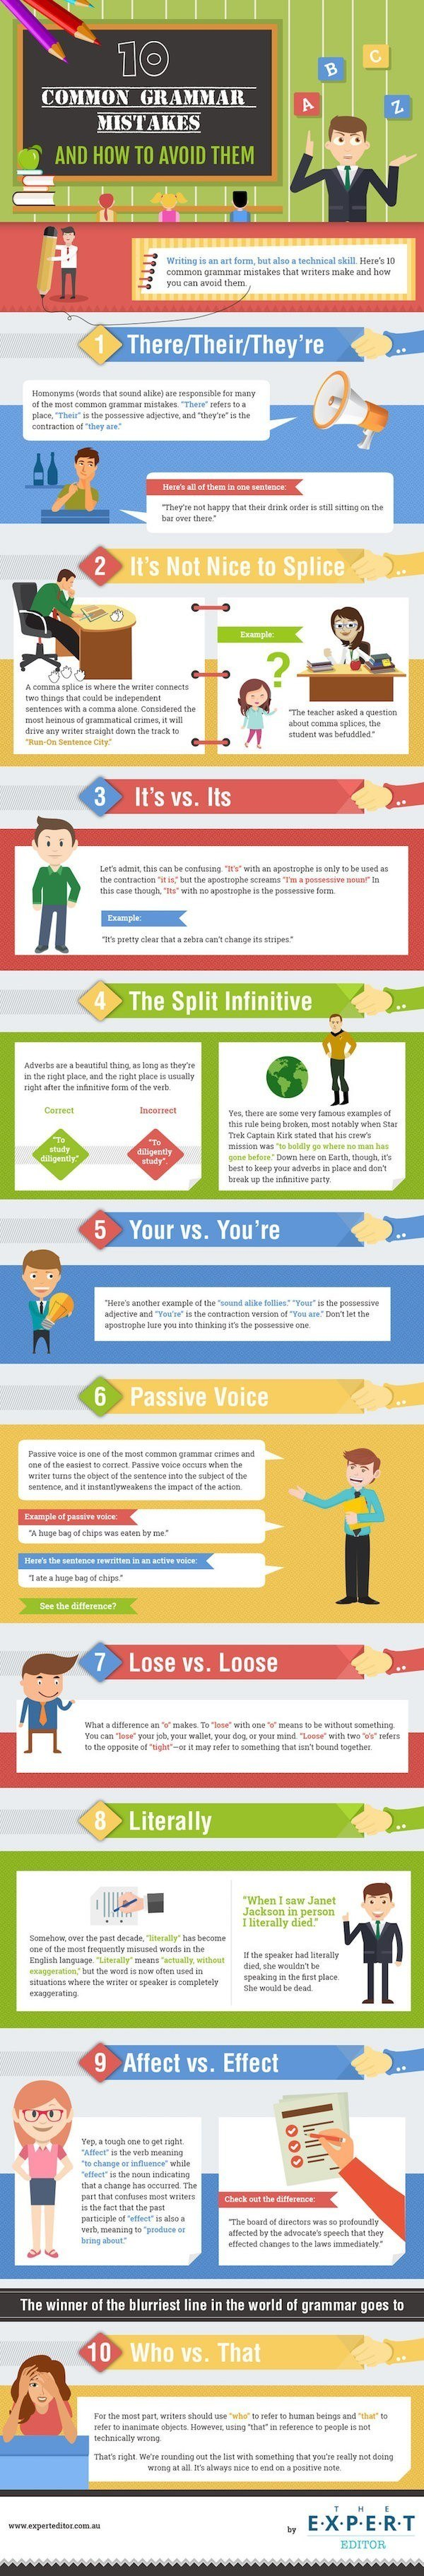 Infographic: 10 Common Grammar Mistakes